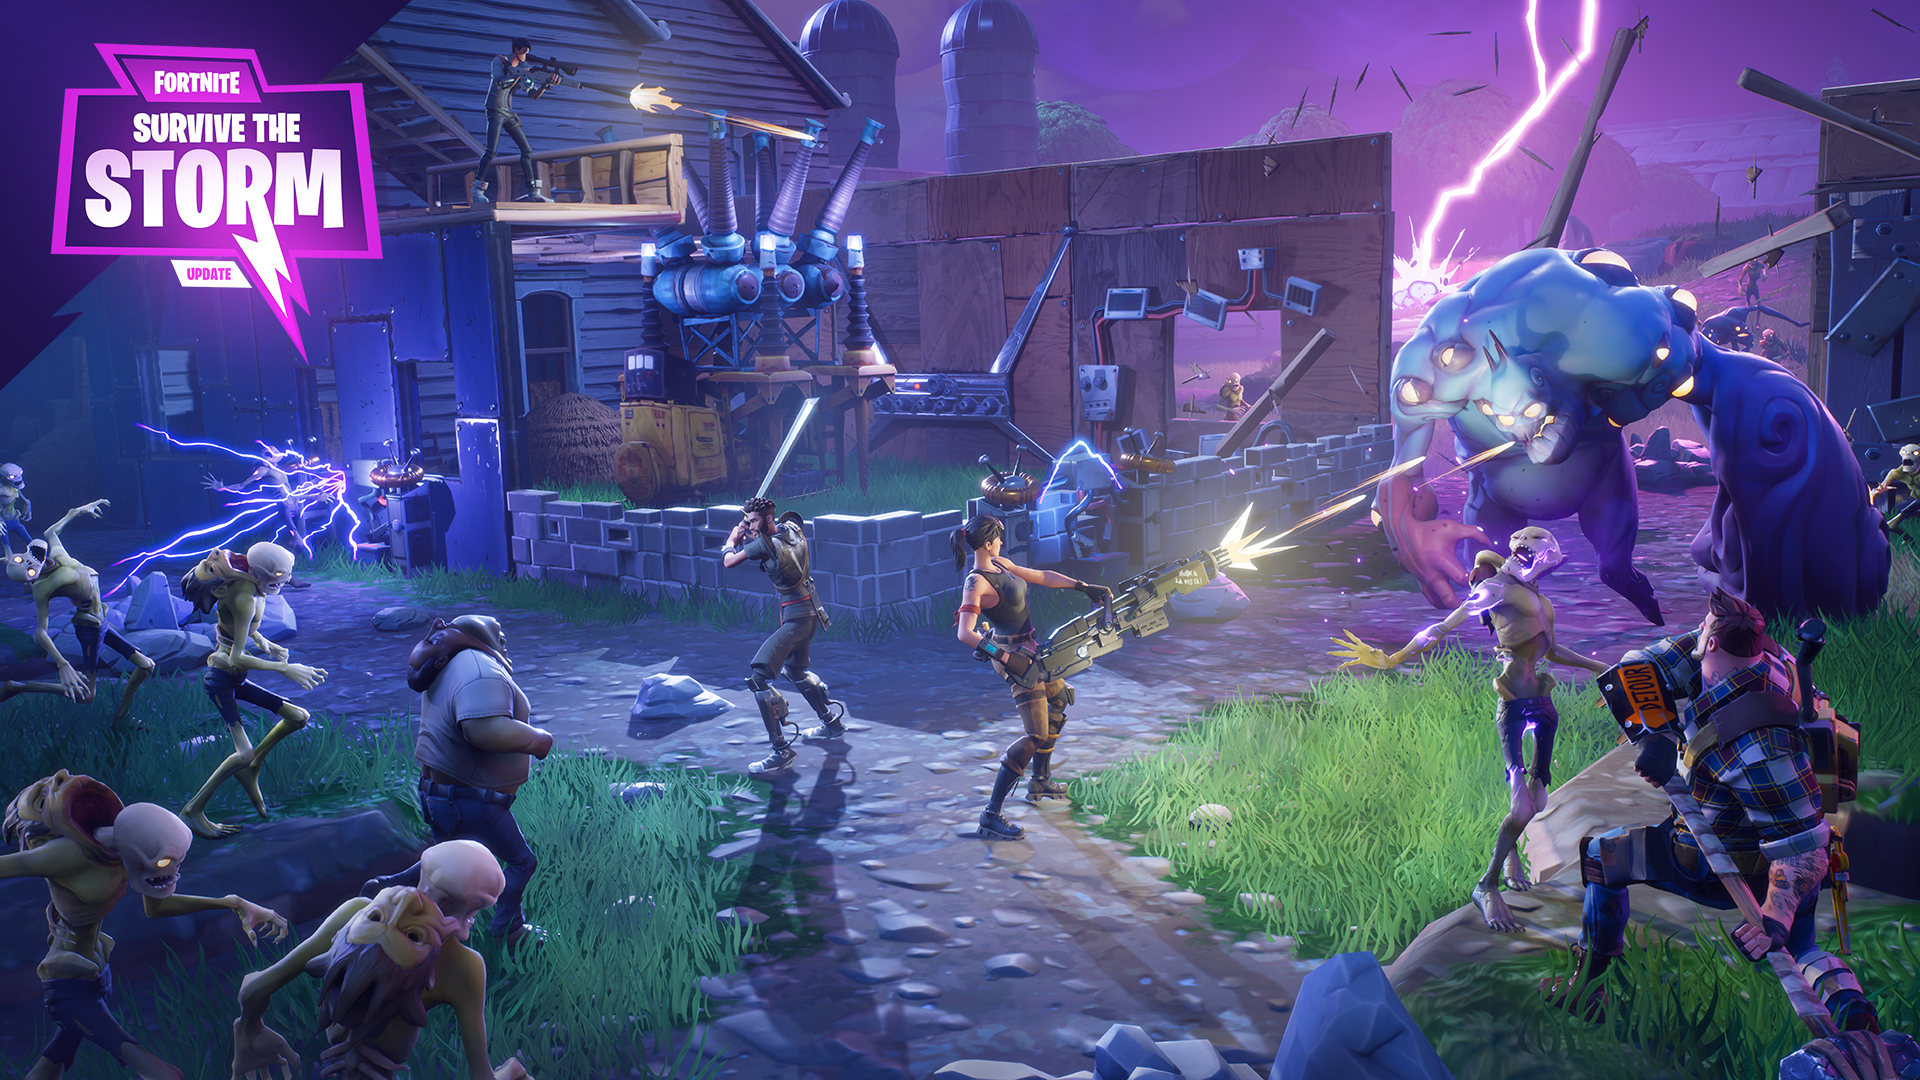 Fortnite%2Fblog%2Fsurvive-the-storm---release-notes%2FENG_Survivor-Mode-Gameplay-1920x1080-c52f98e7ed16193e1f269300b5b76fe916c02dfc